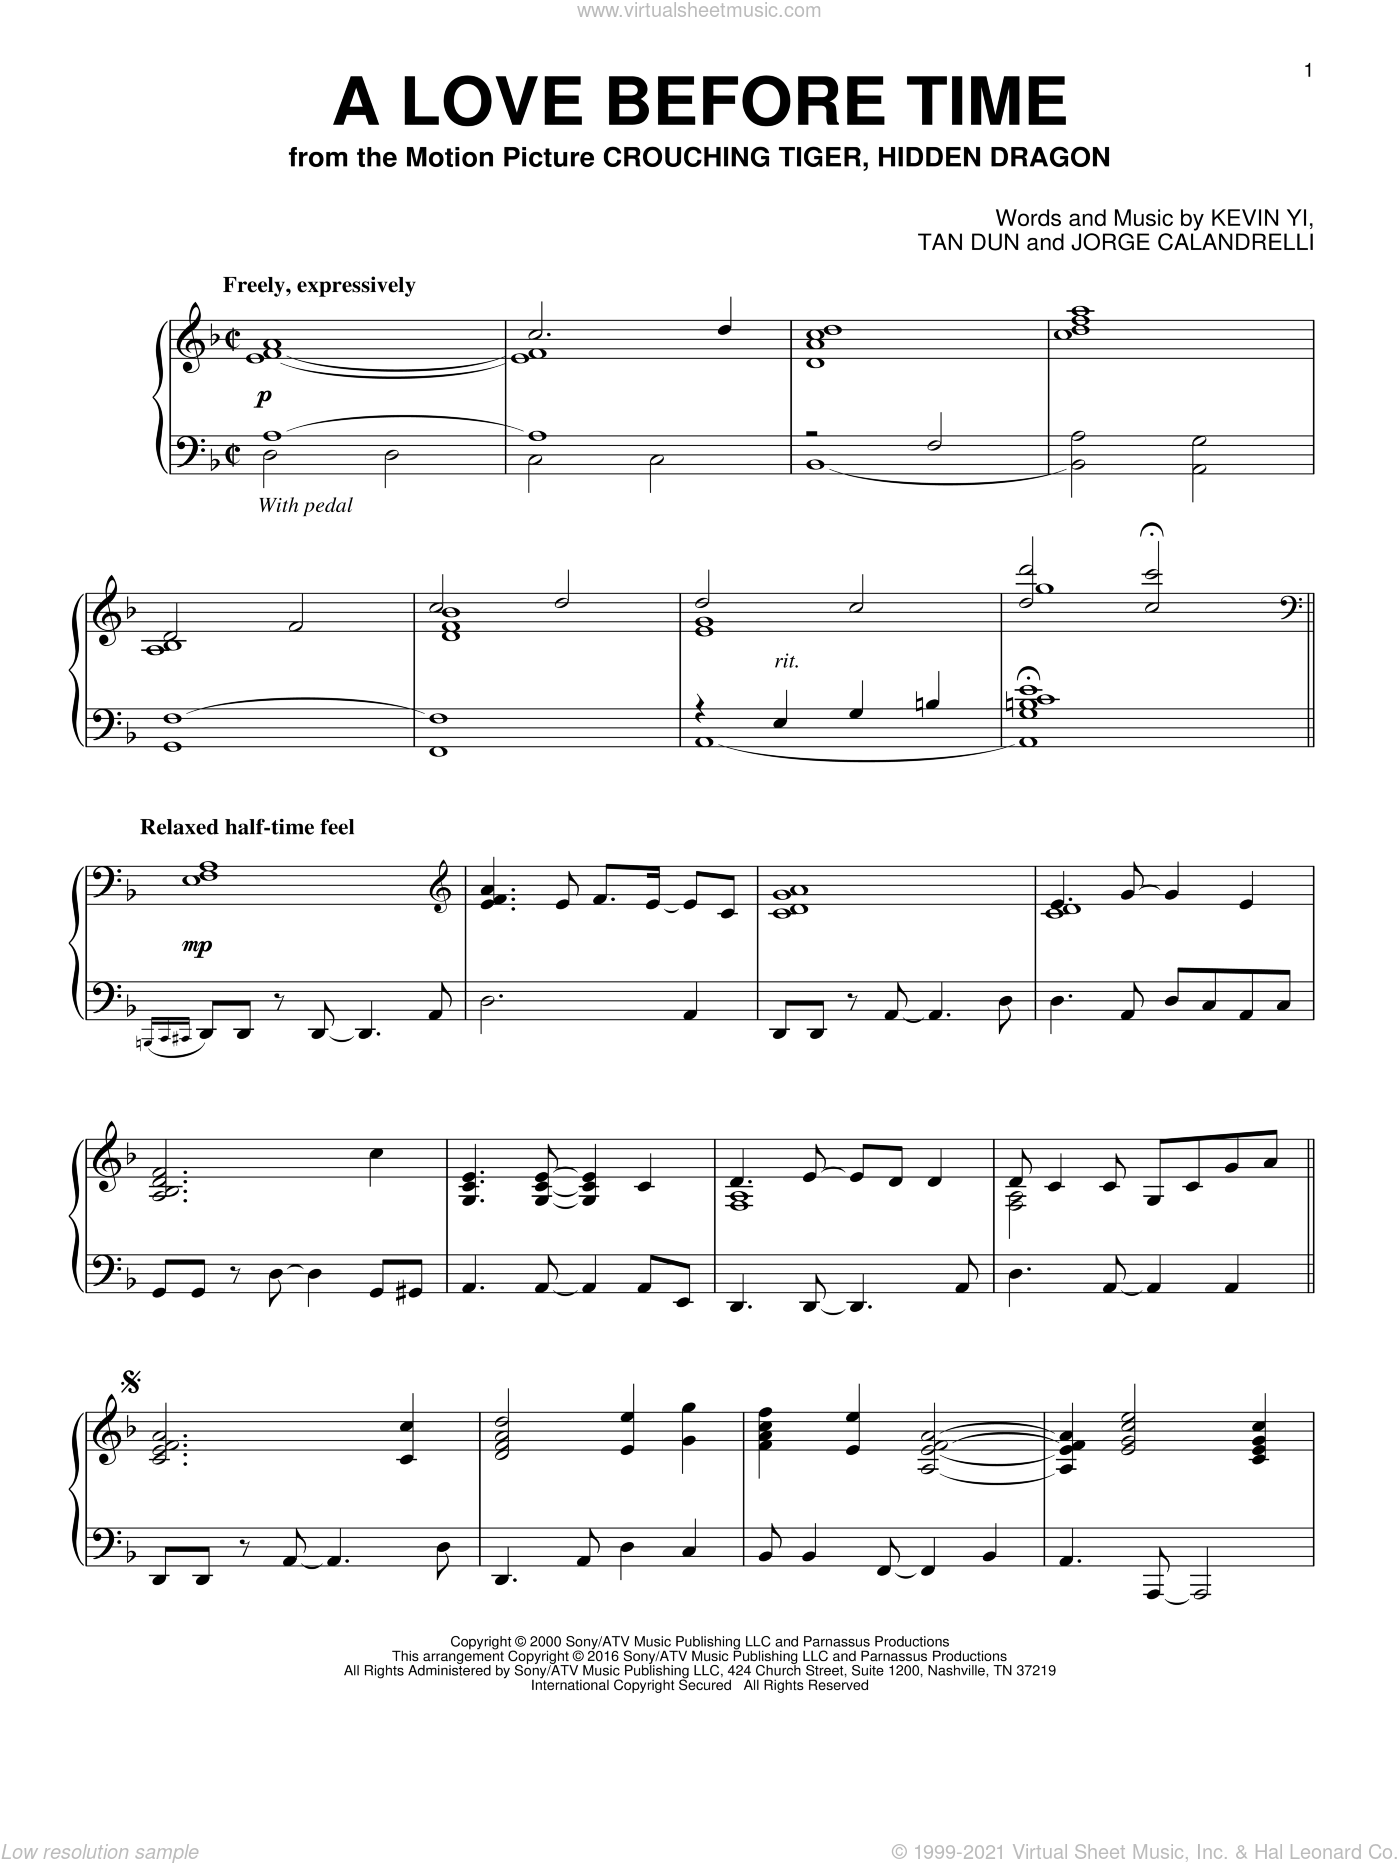 A Love Before Time sheet music for piano solo by Kevin Yi and Tan Dun. Score Image Preview.